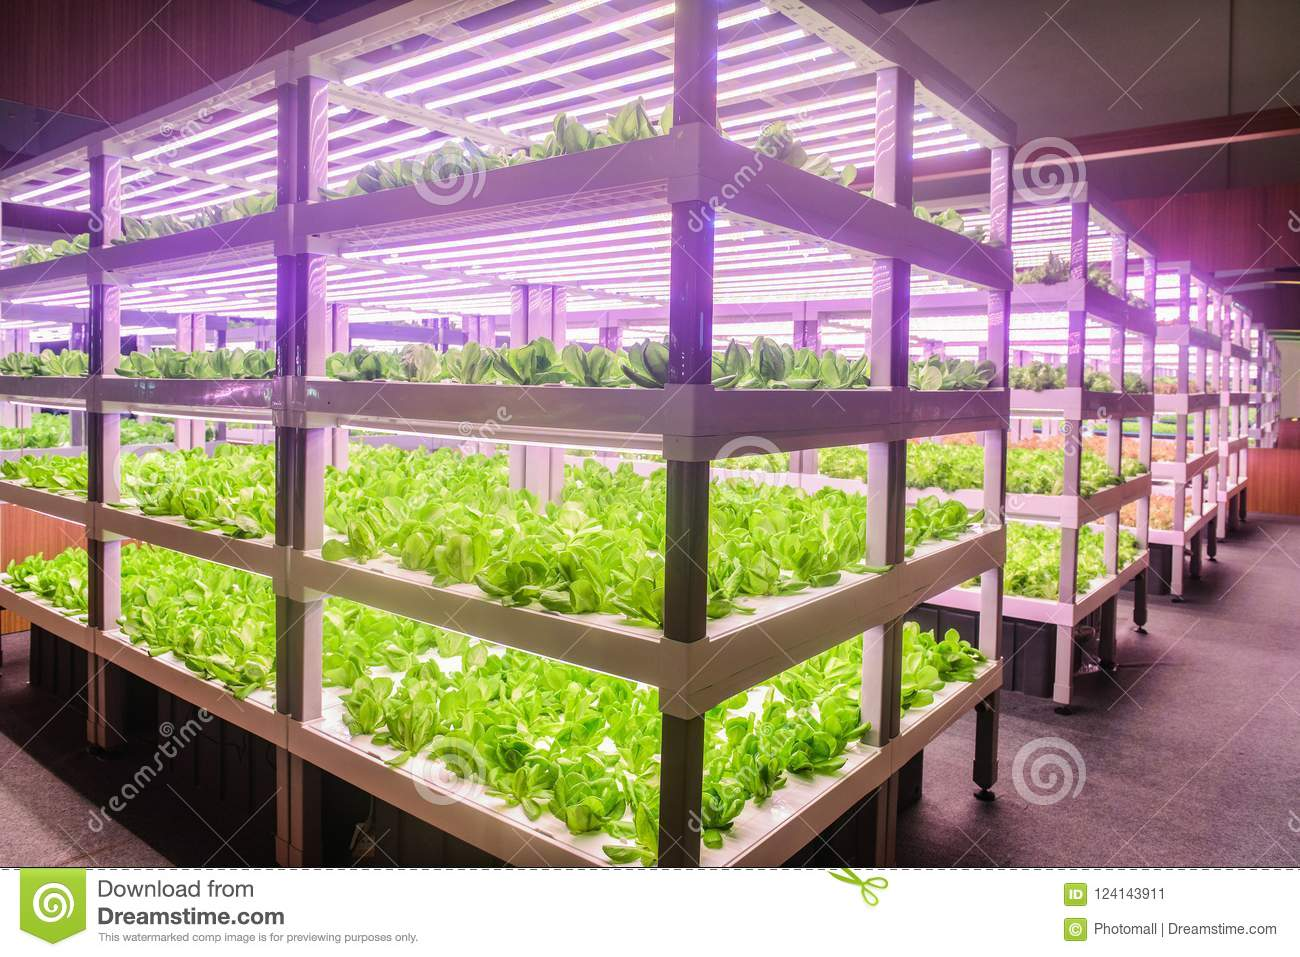 Led plant growth lamp used in Vertical agriculture